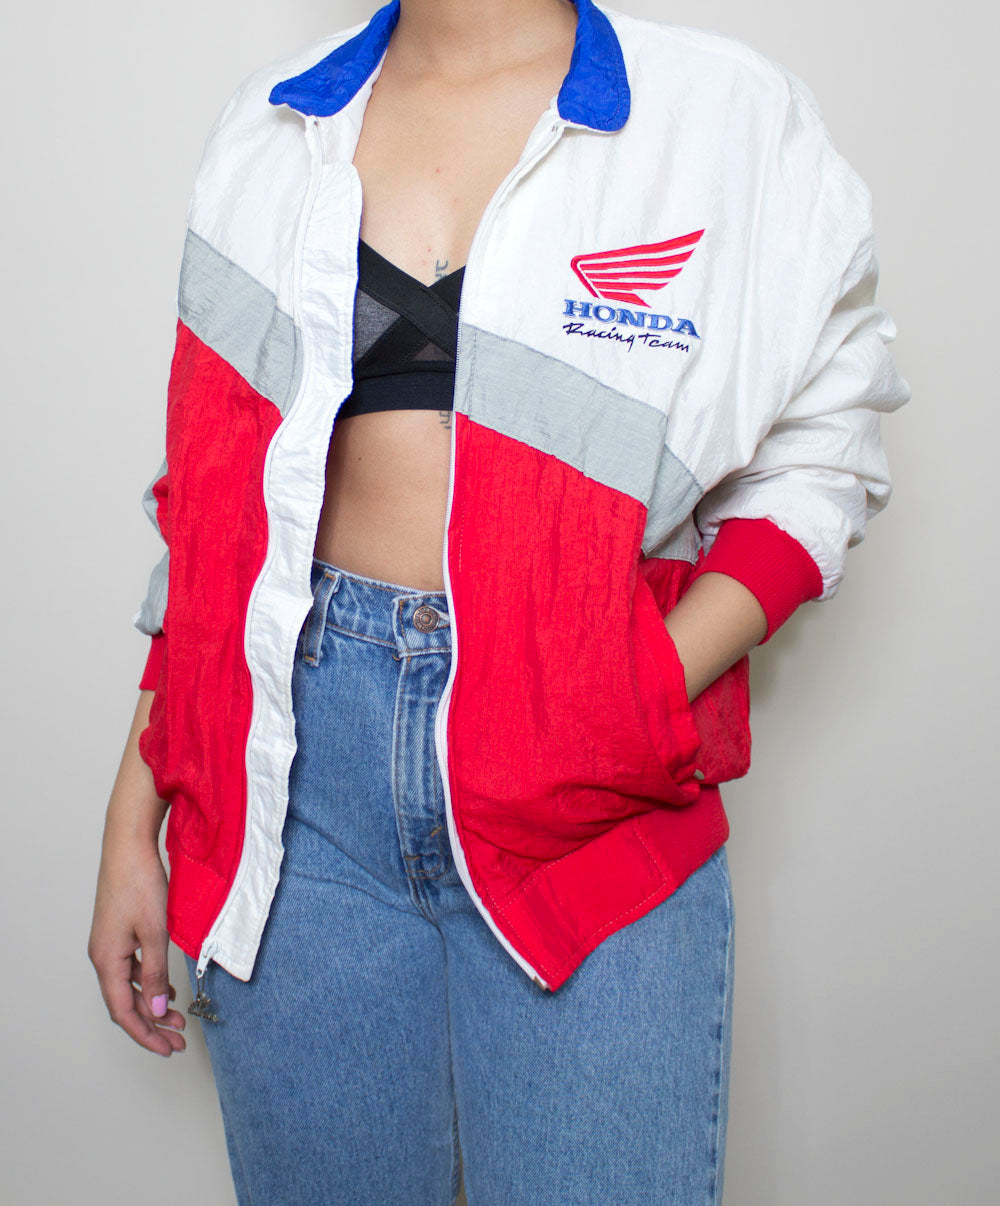 Honda Racing Team Windbreaker